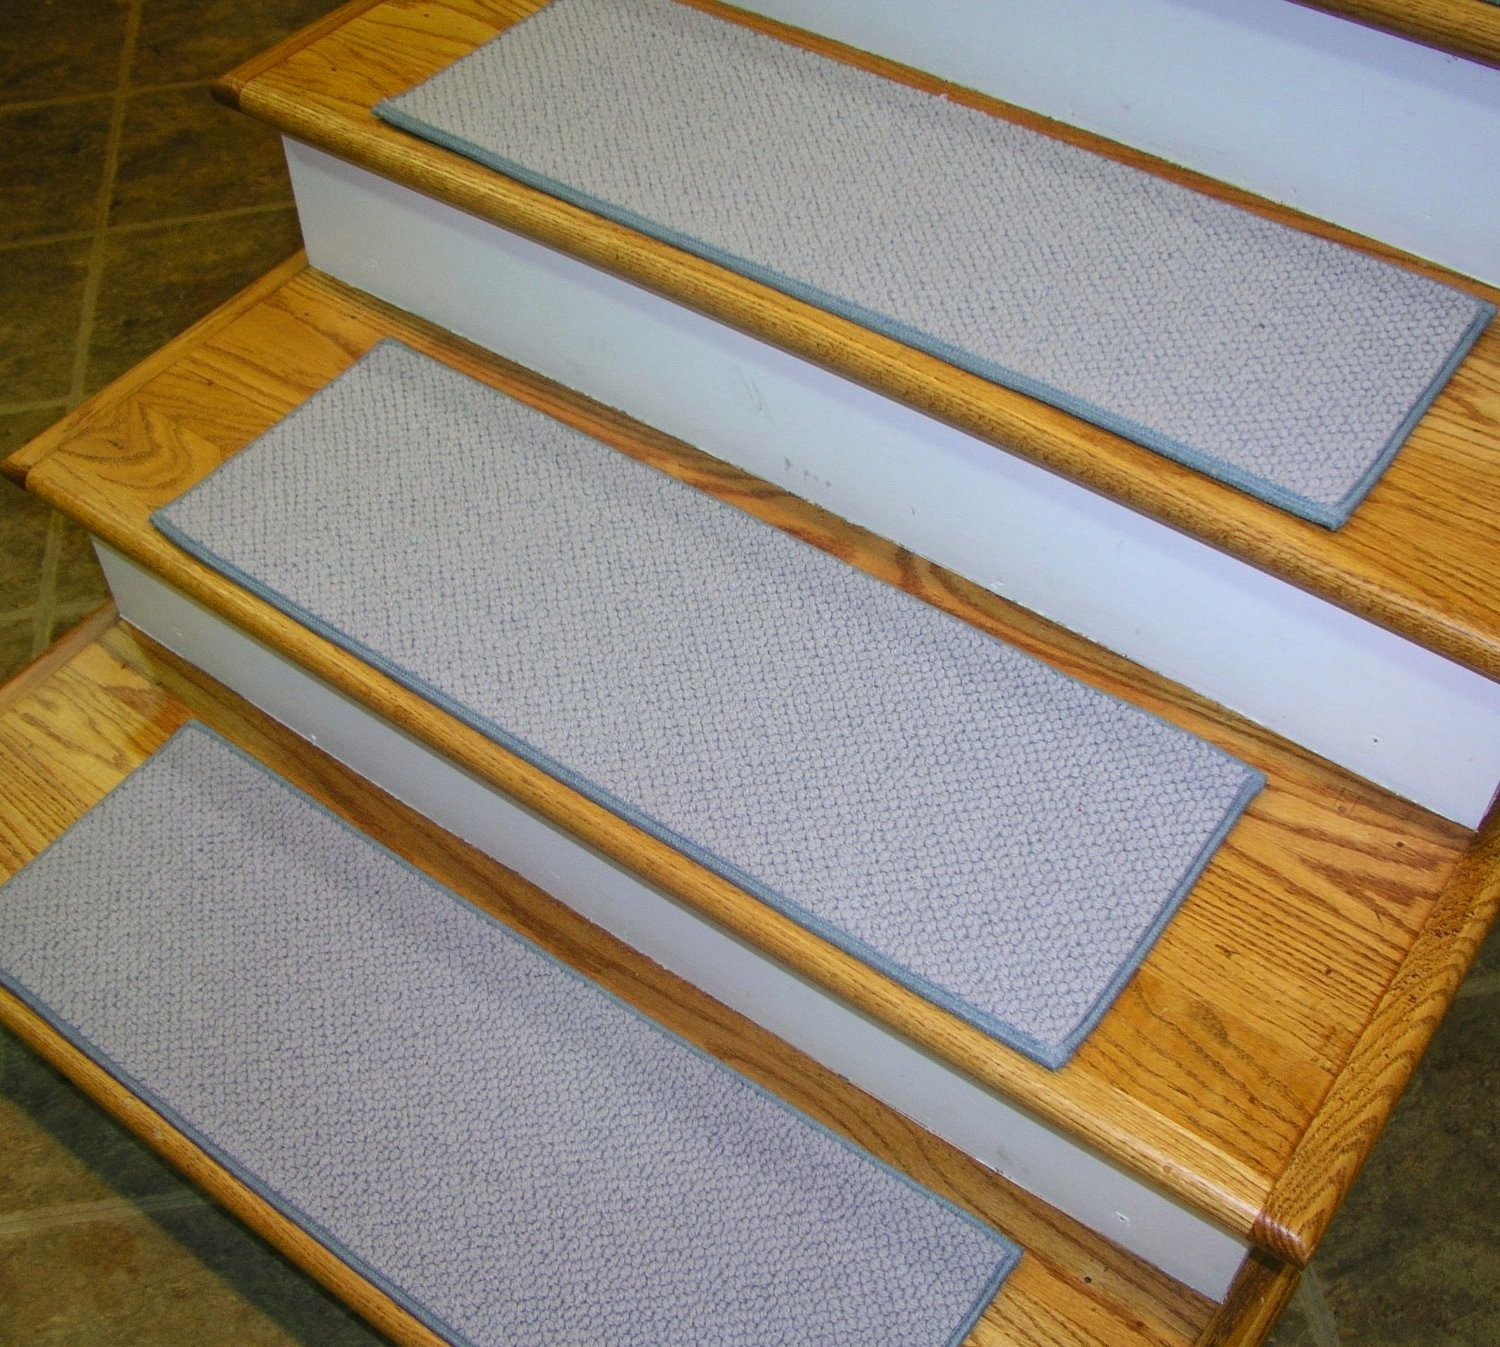 Flooring Pretty Stair Treads Carpet For Stair Decoration Idea Regarding Carpet Stair Treads For Dogs (#12 of 20)